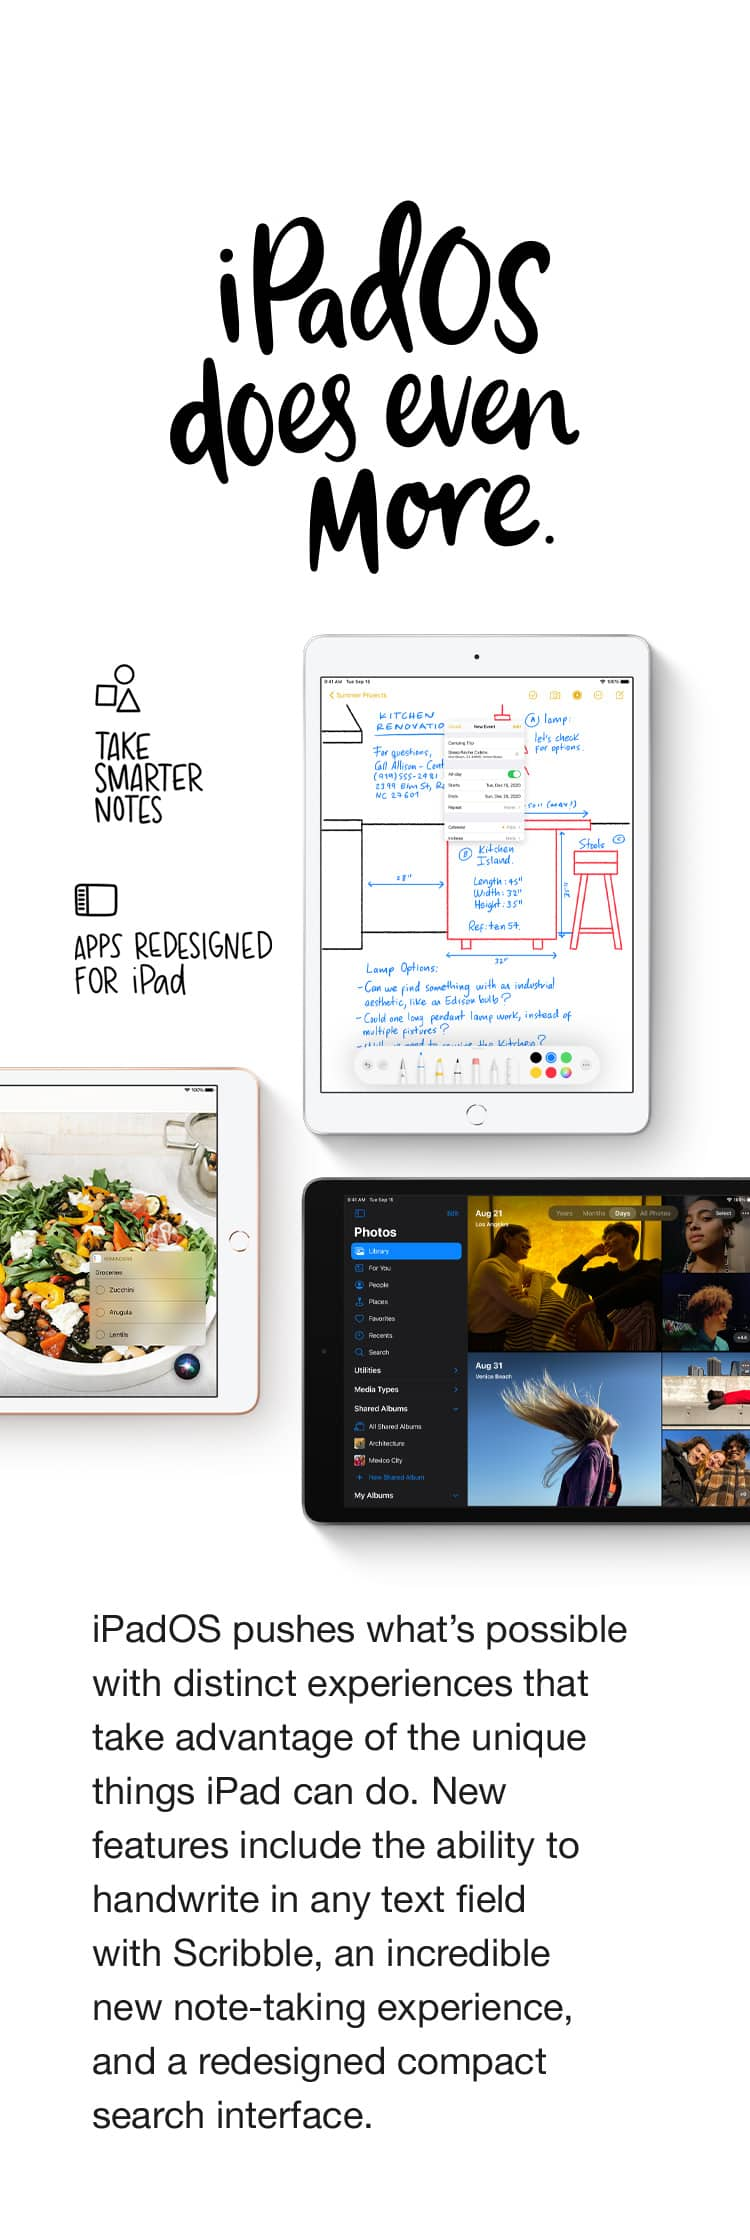 iPadOS does even more. iPadOS pushes what's possible with distinct experiences that take advantage of the unique things iPad can do.  New features include the ability to handwrite in any text field with Scribble, an incredible new note-taking experience, and a redesigned compact search interface. Apps for everything. There are over a million apps on the App Store specifically designed for the large display and power of iPad. Make a beat, get a workout in, read the news, or join a battle royale with friends. Whatever you're interested in, you'll find an app for it.